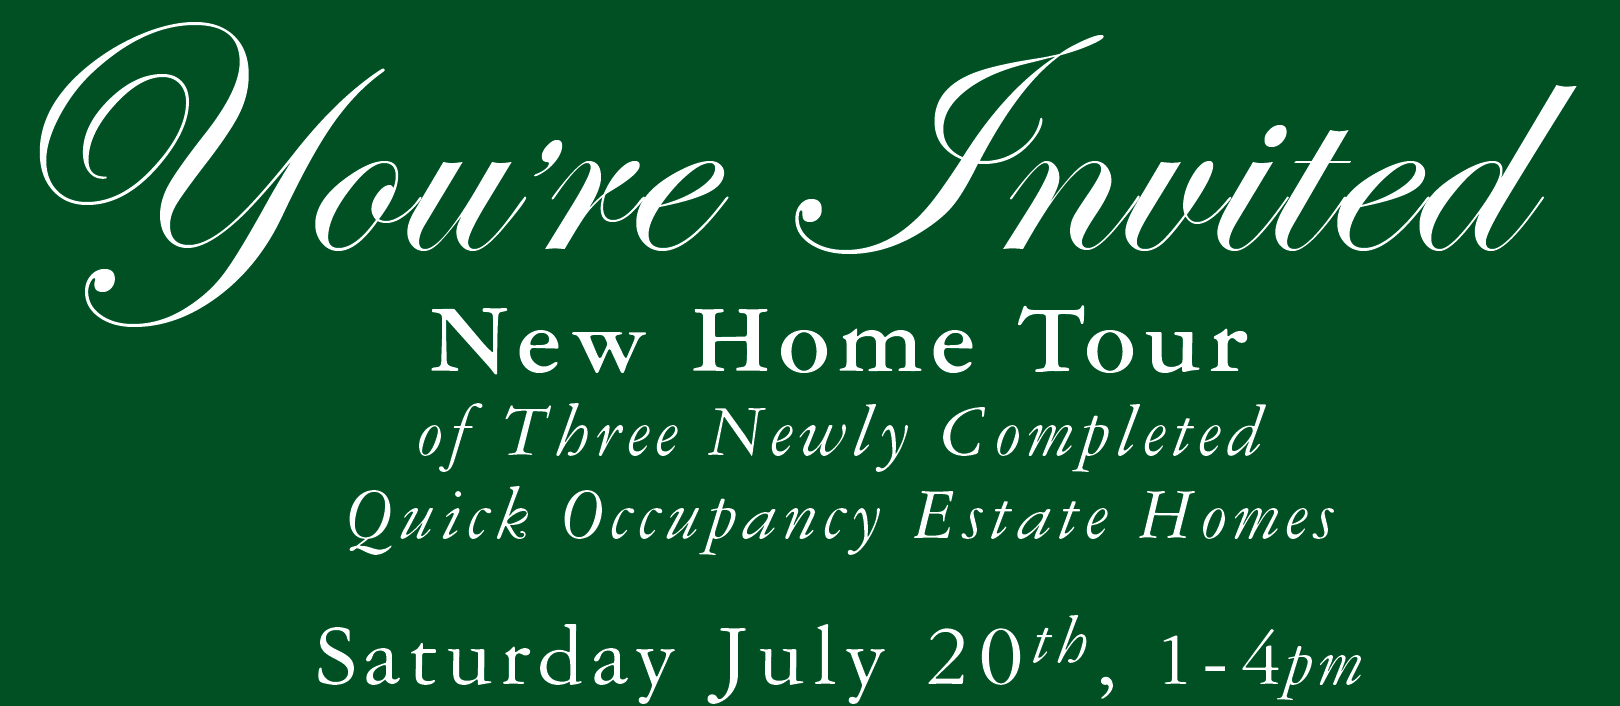 New Home Tour of Our Three Newly Completed Quick Occupancy Estate Homes!